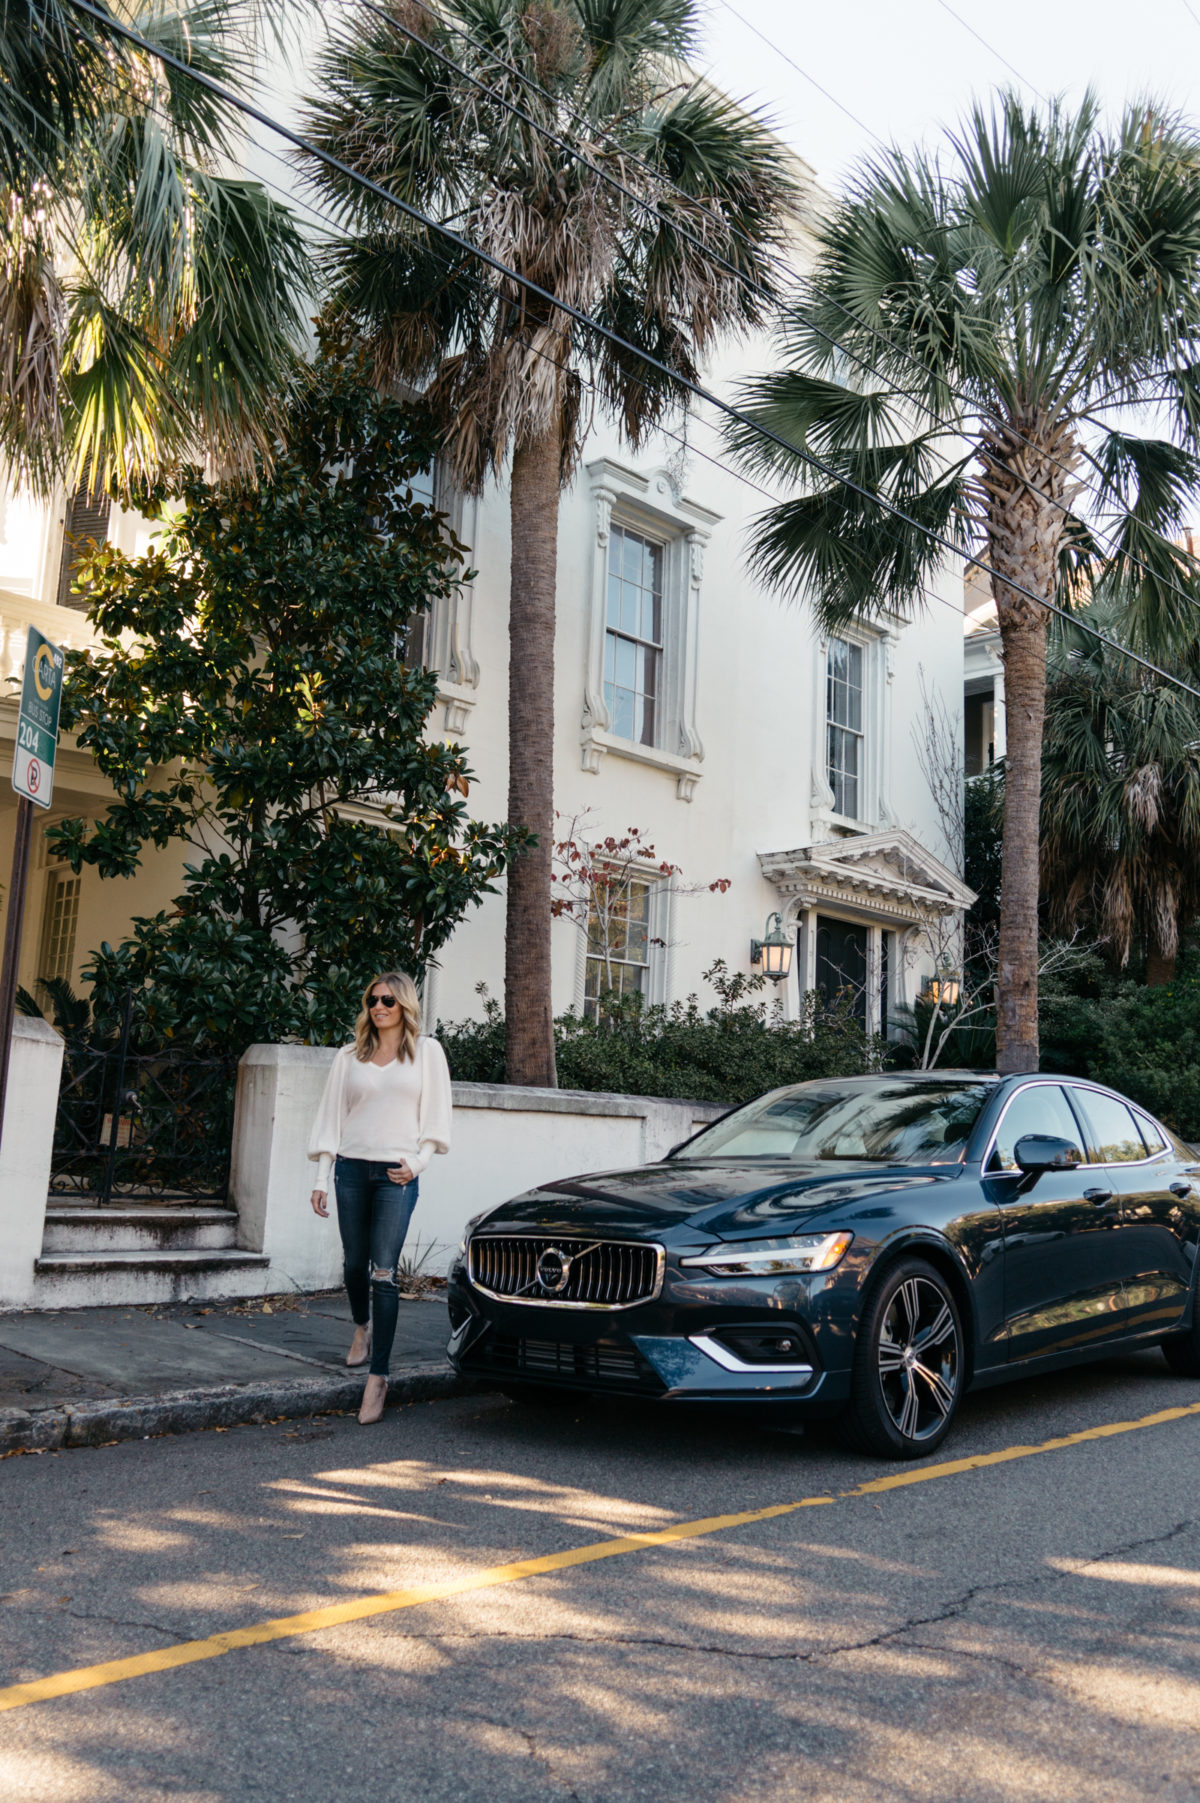 CHARLESTON EATS BY WAY OF VOLVO